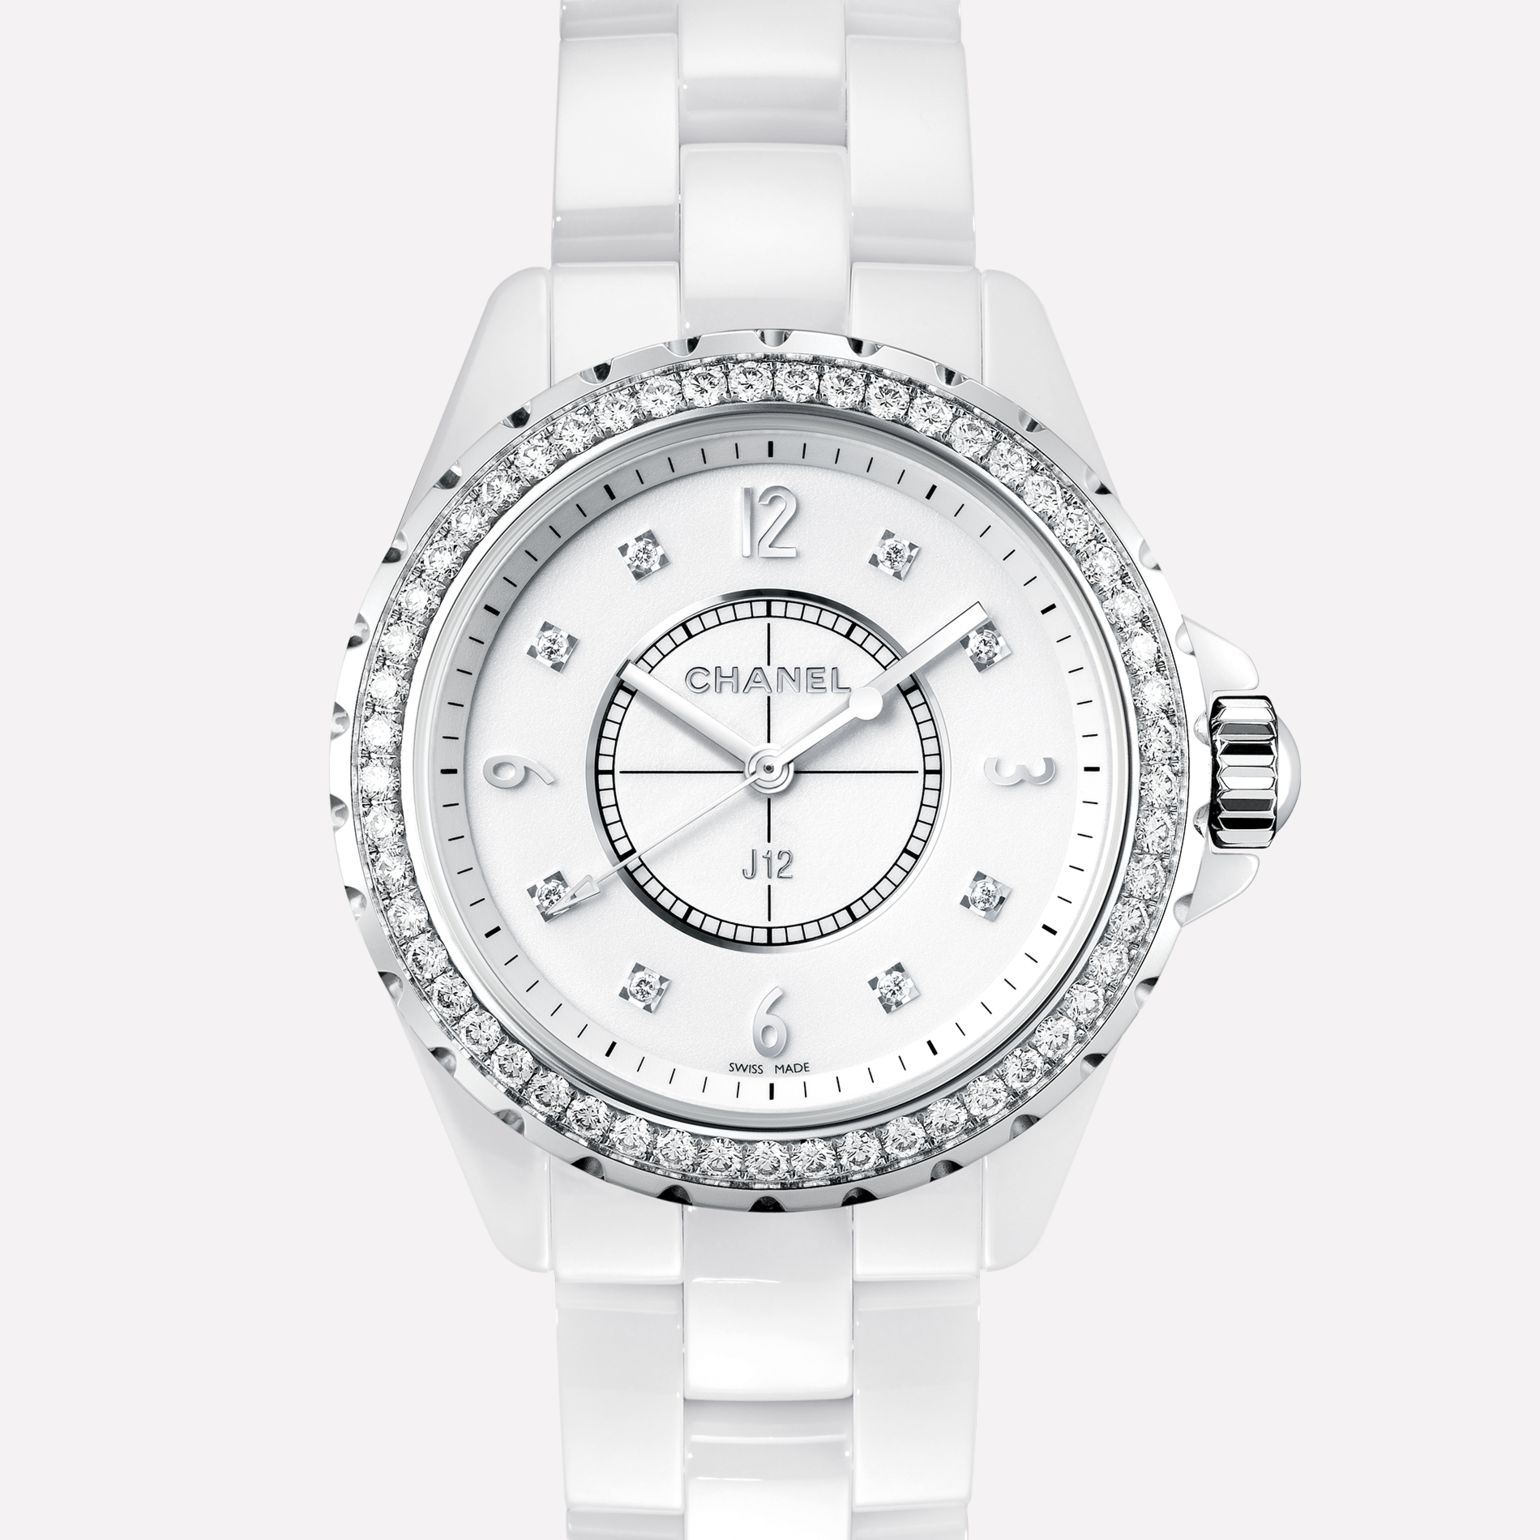 J12 White ceramic and steel, diamond bezel and indicators